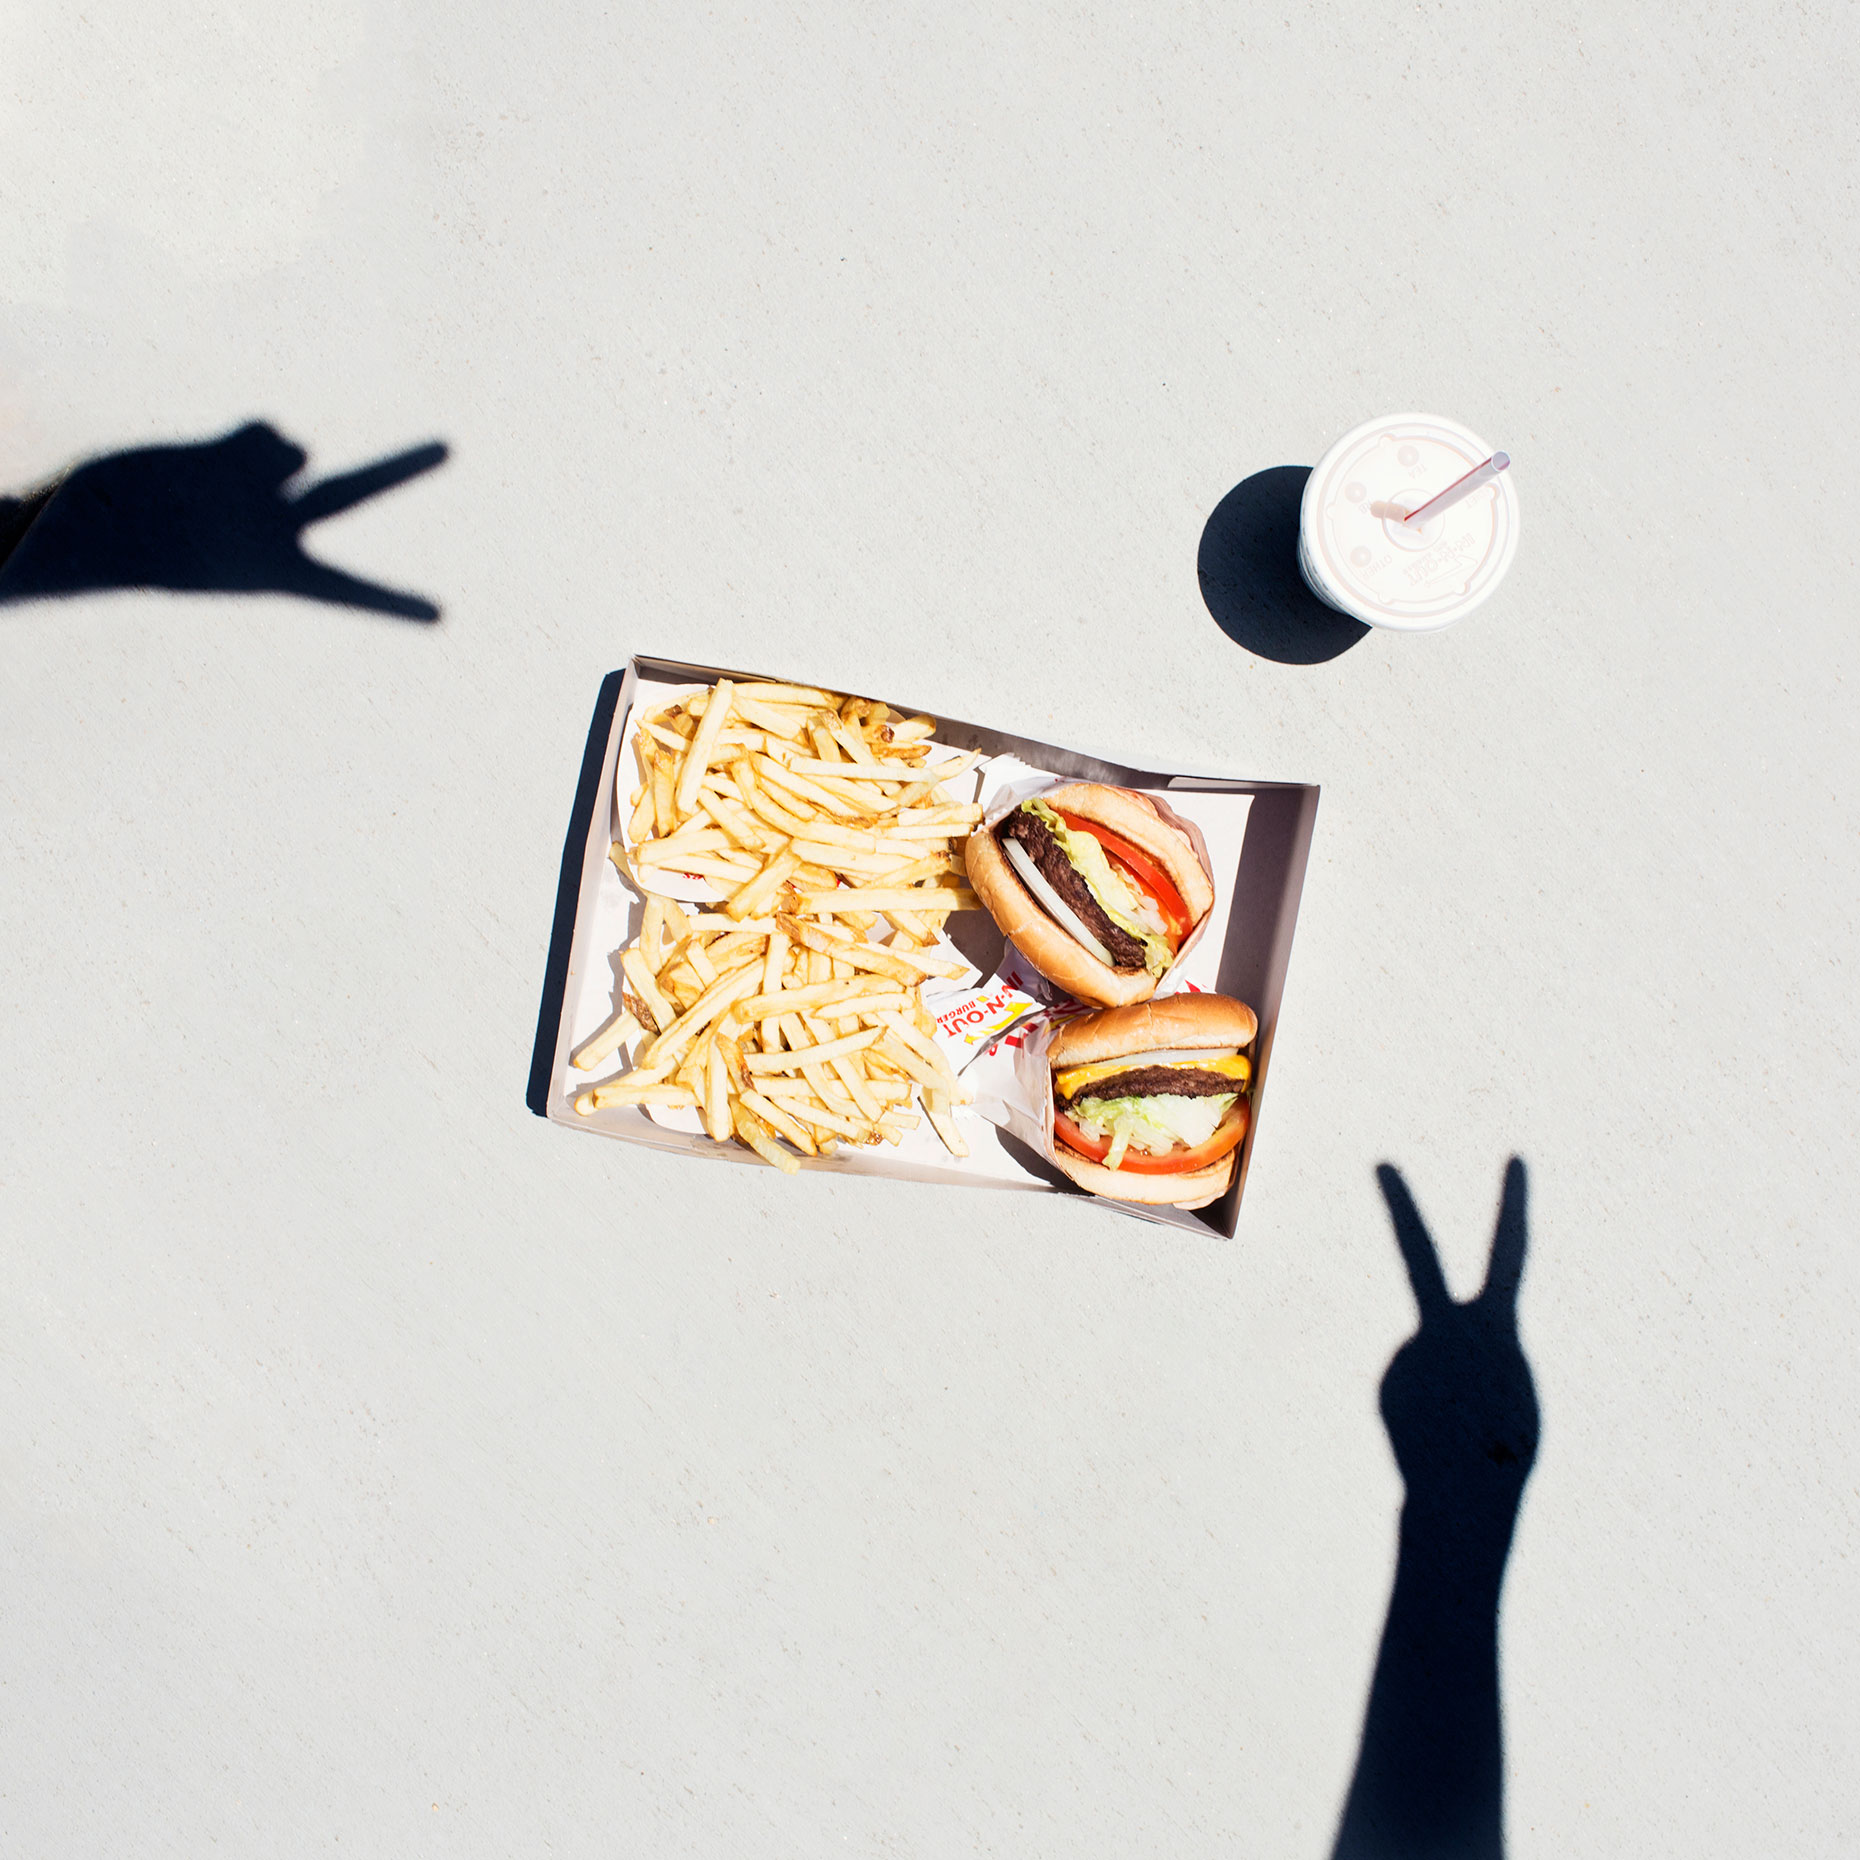 Summertime In-N-Out Burger snack. Kimberly Genevieve lifestyle photographer Los Angeles